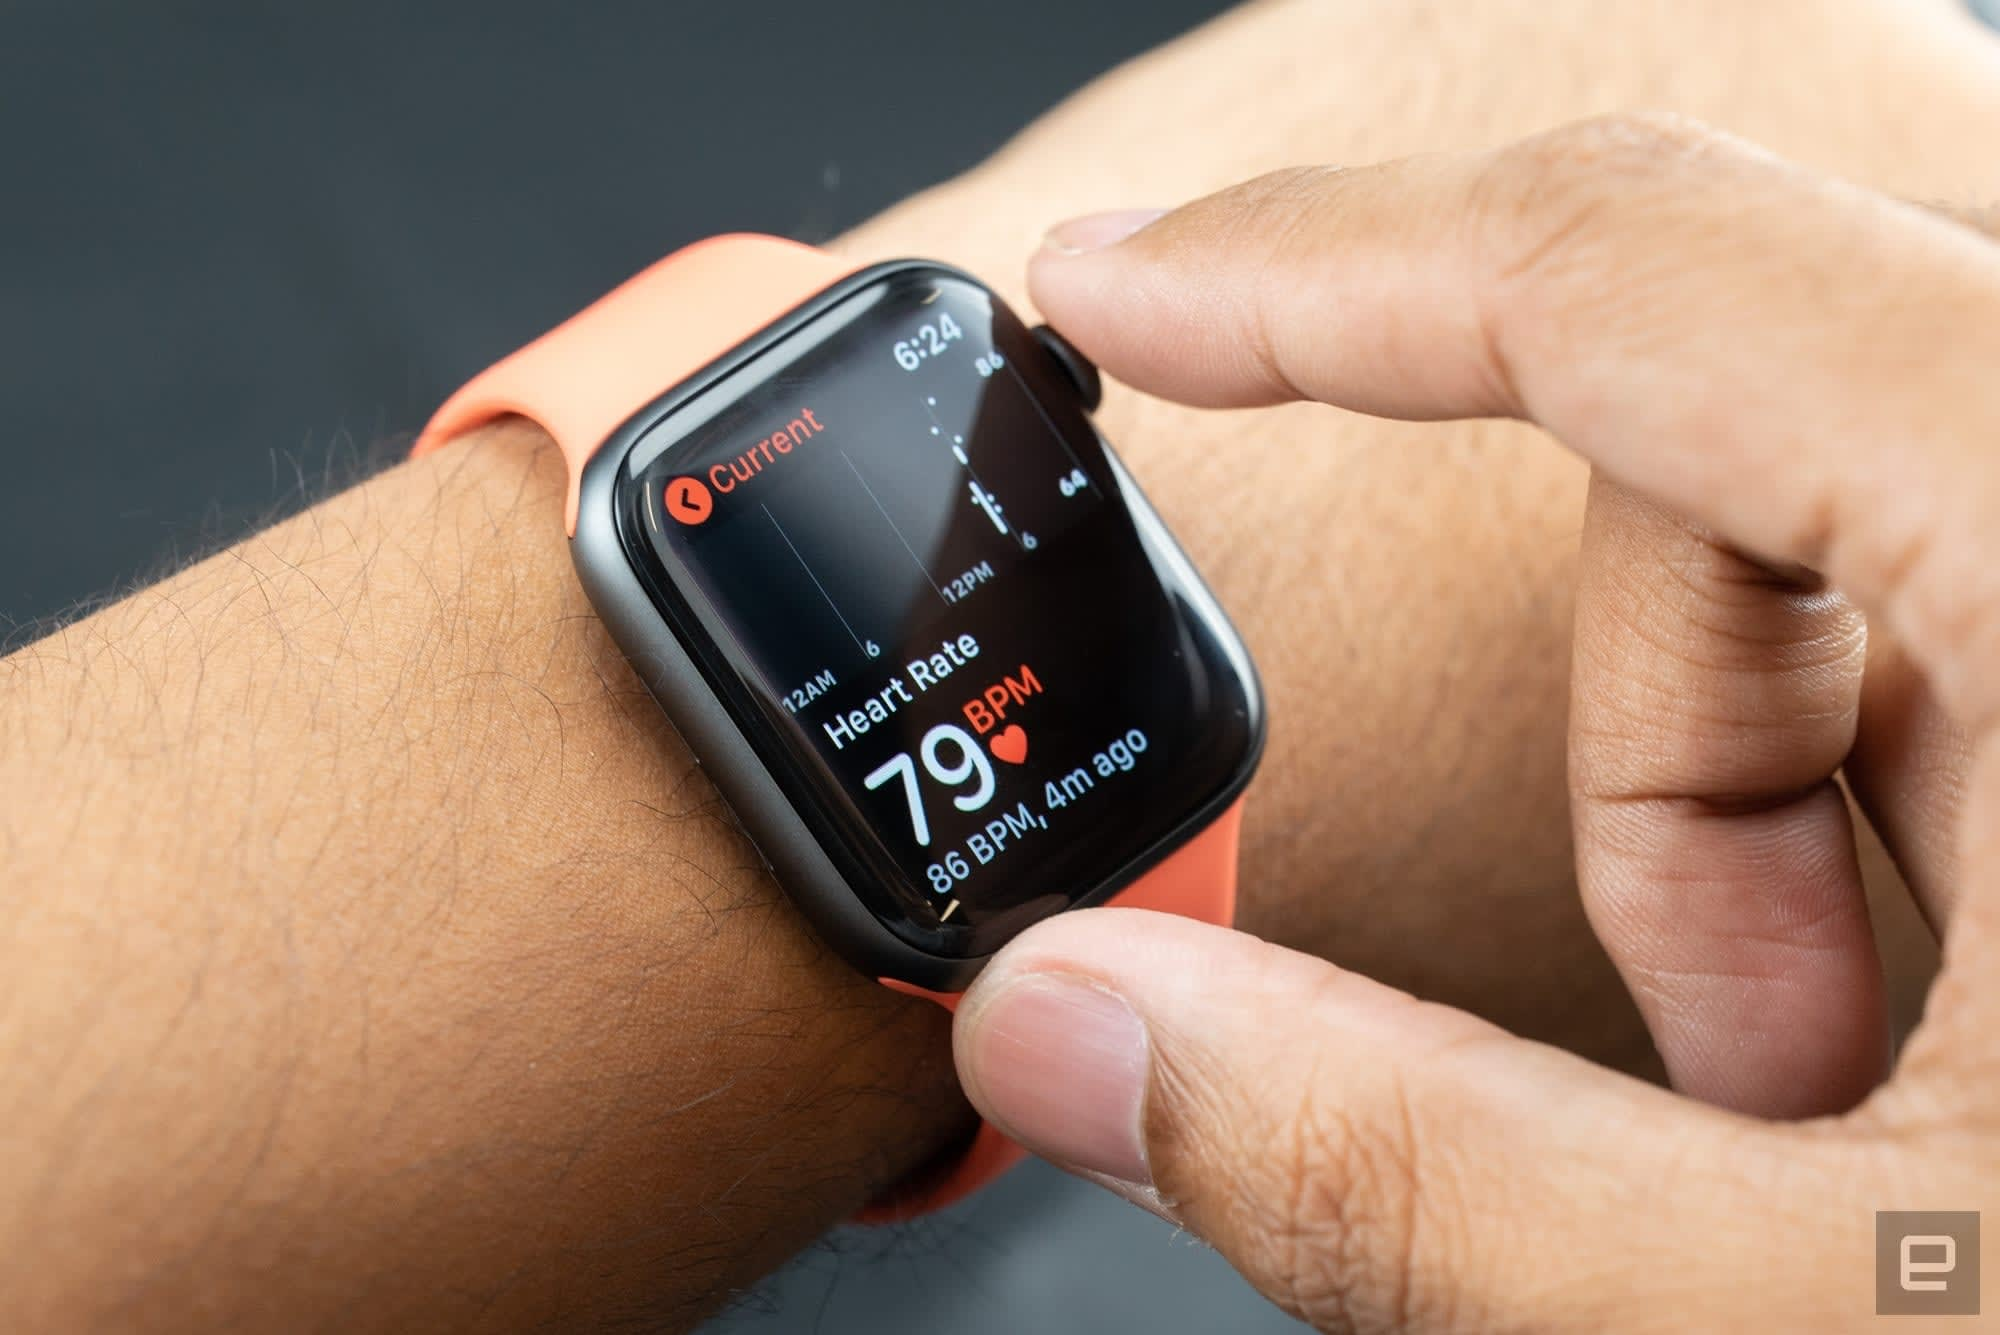 The Apple Watch Series 4 is on sale for an all-time low